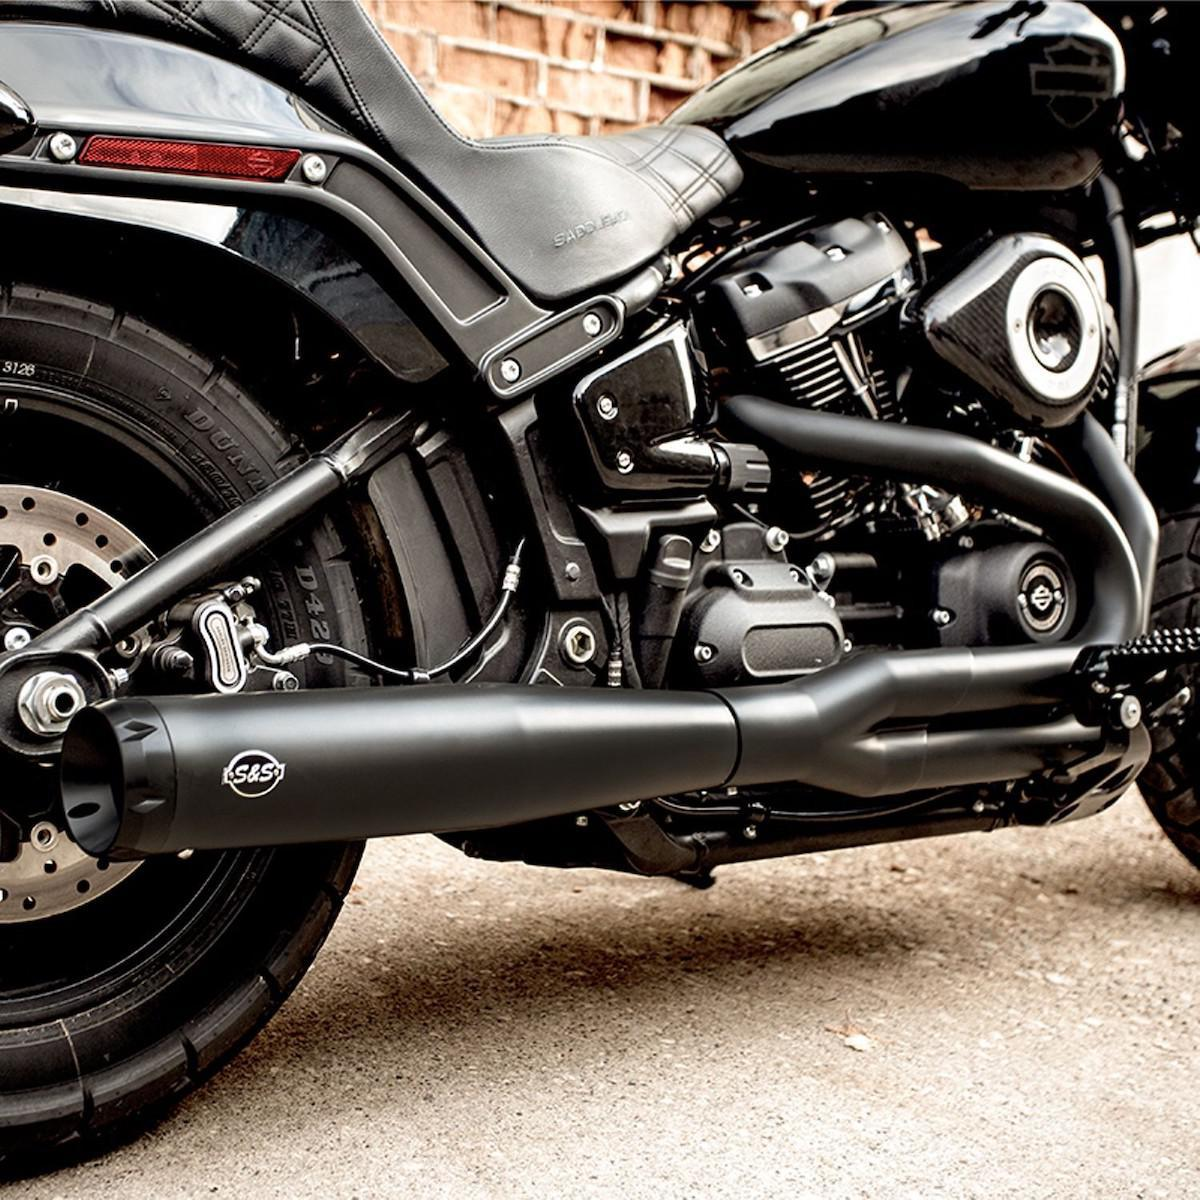 S&S CYCLE - SuperStreet Two into One Exhaust System for HD Softail Models